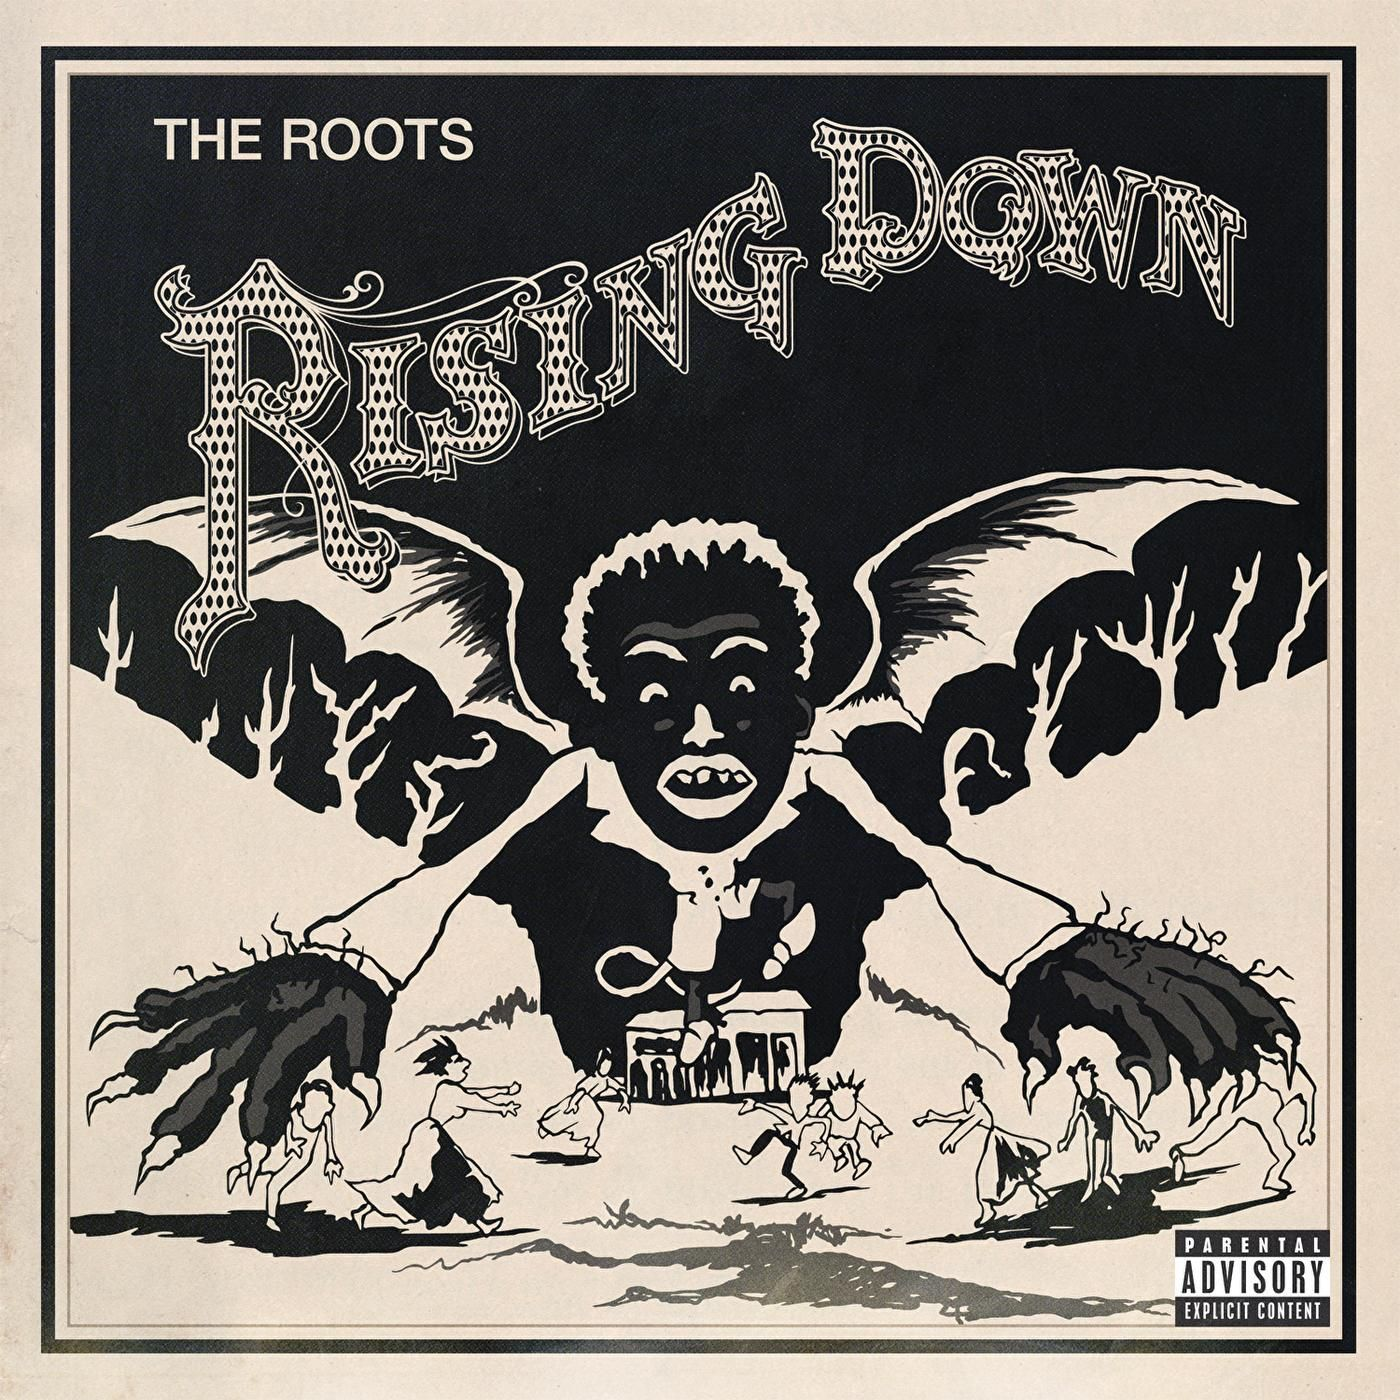 The Roots - Rising Down album cover